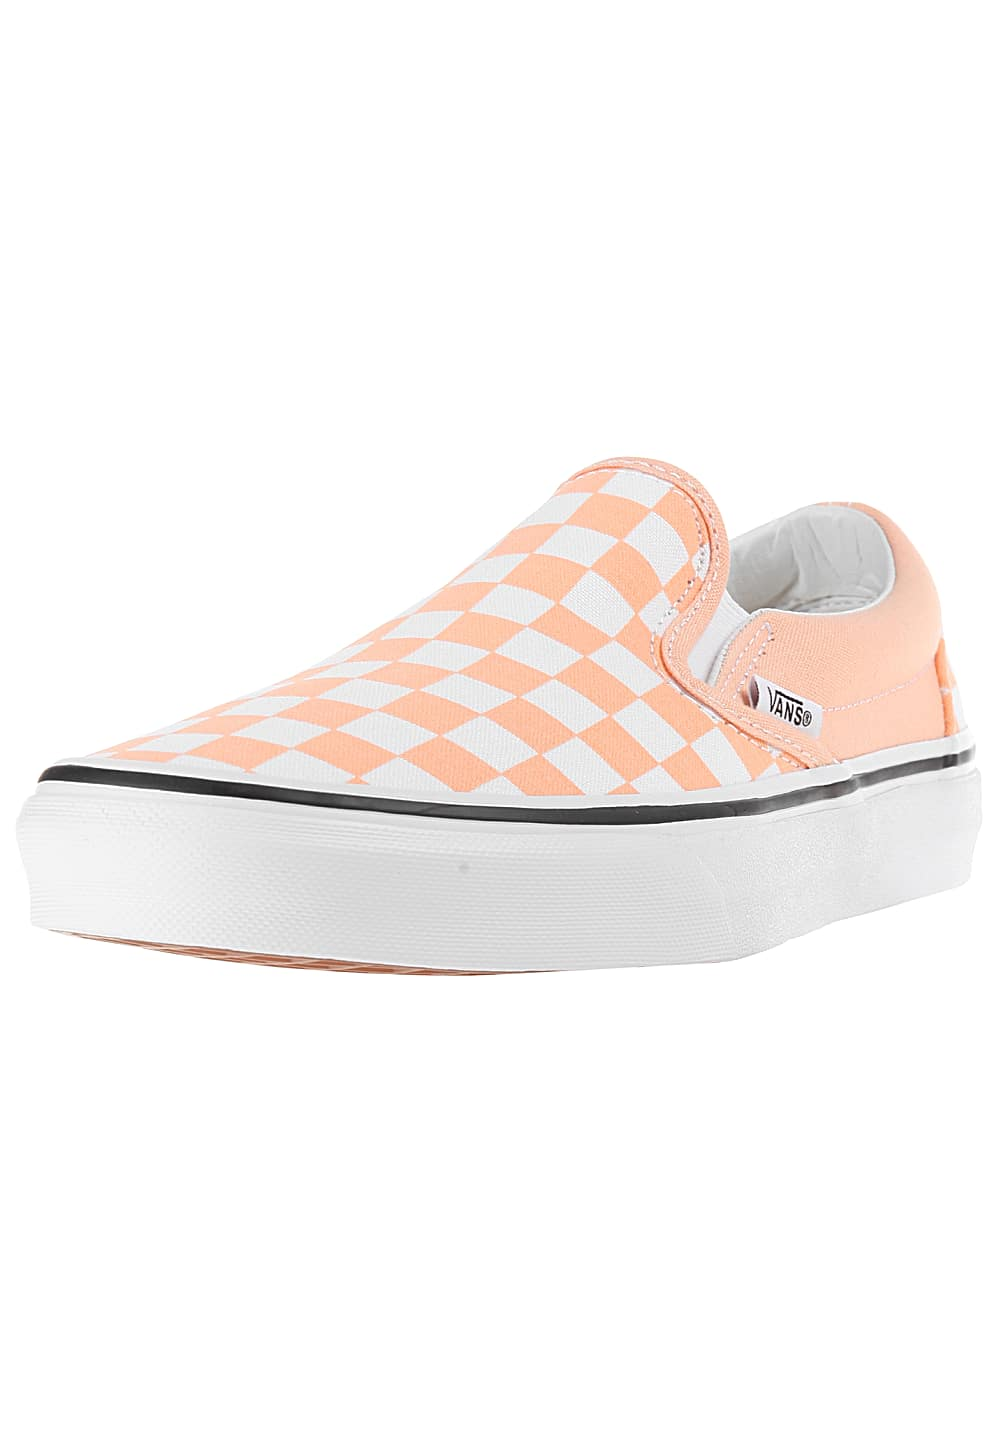 VANS Classic - Slip Ons - Orange